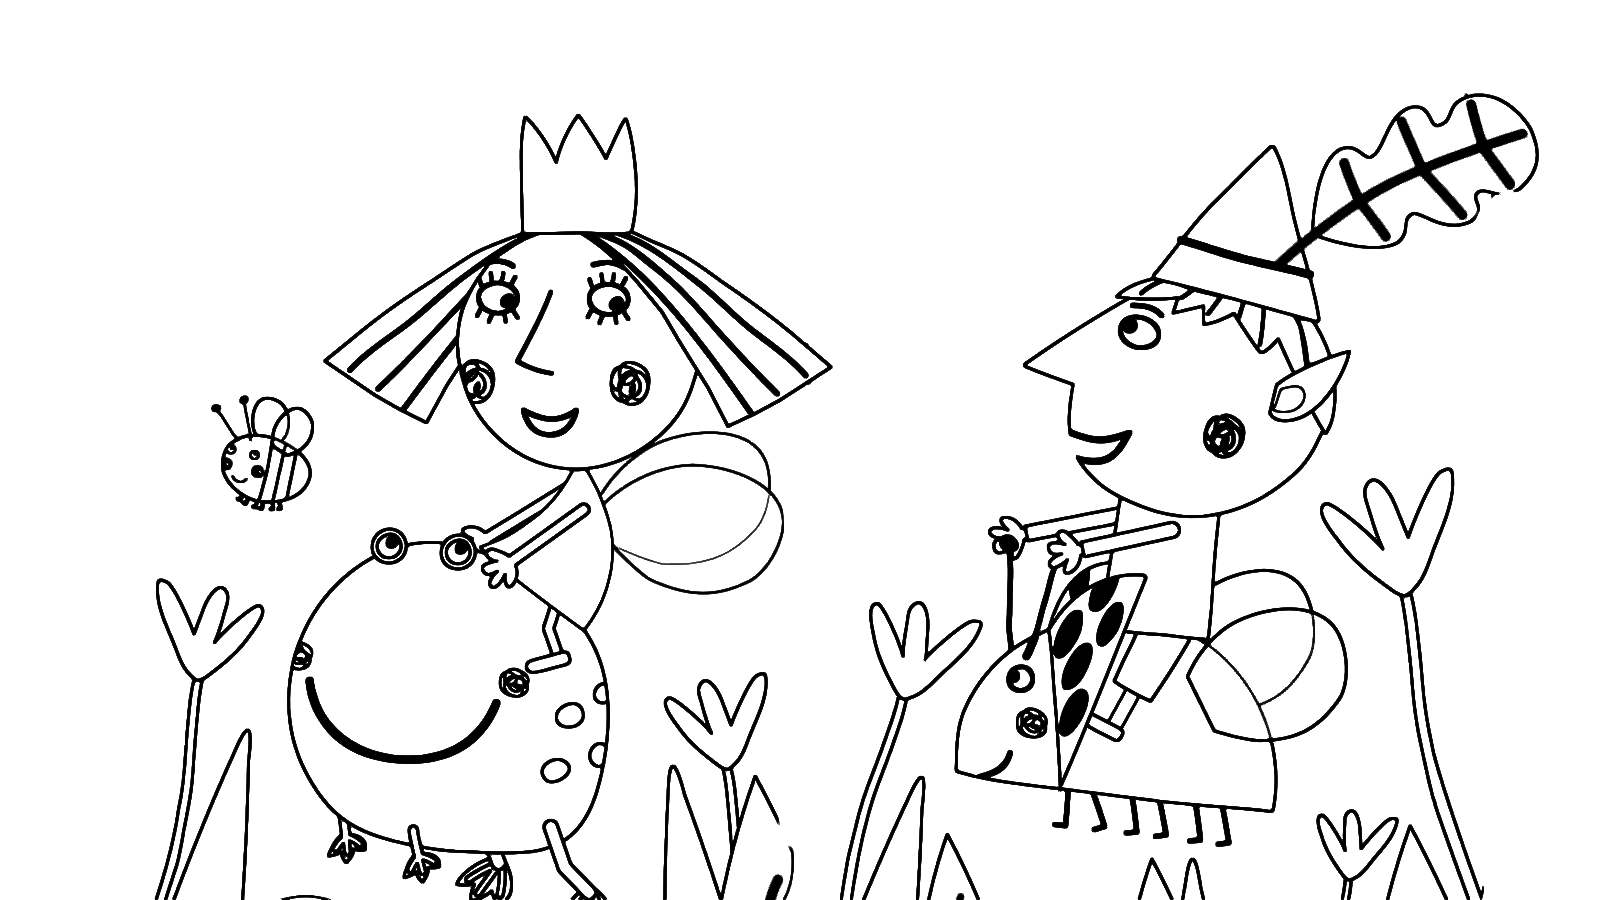 ben  holly's little kingdom  ben and holly in the middle